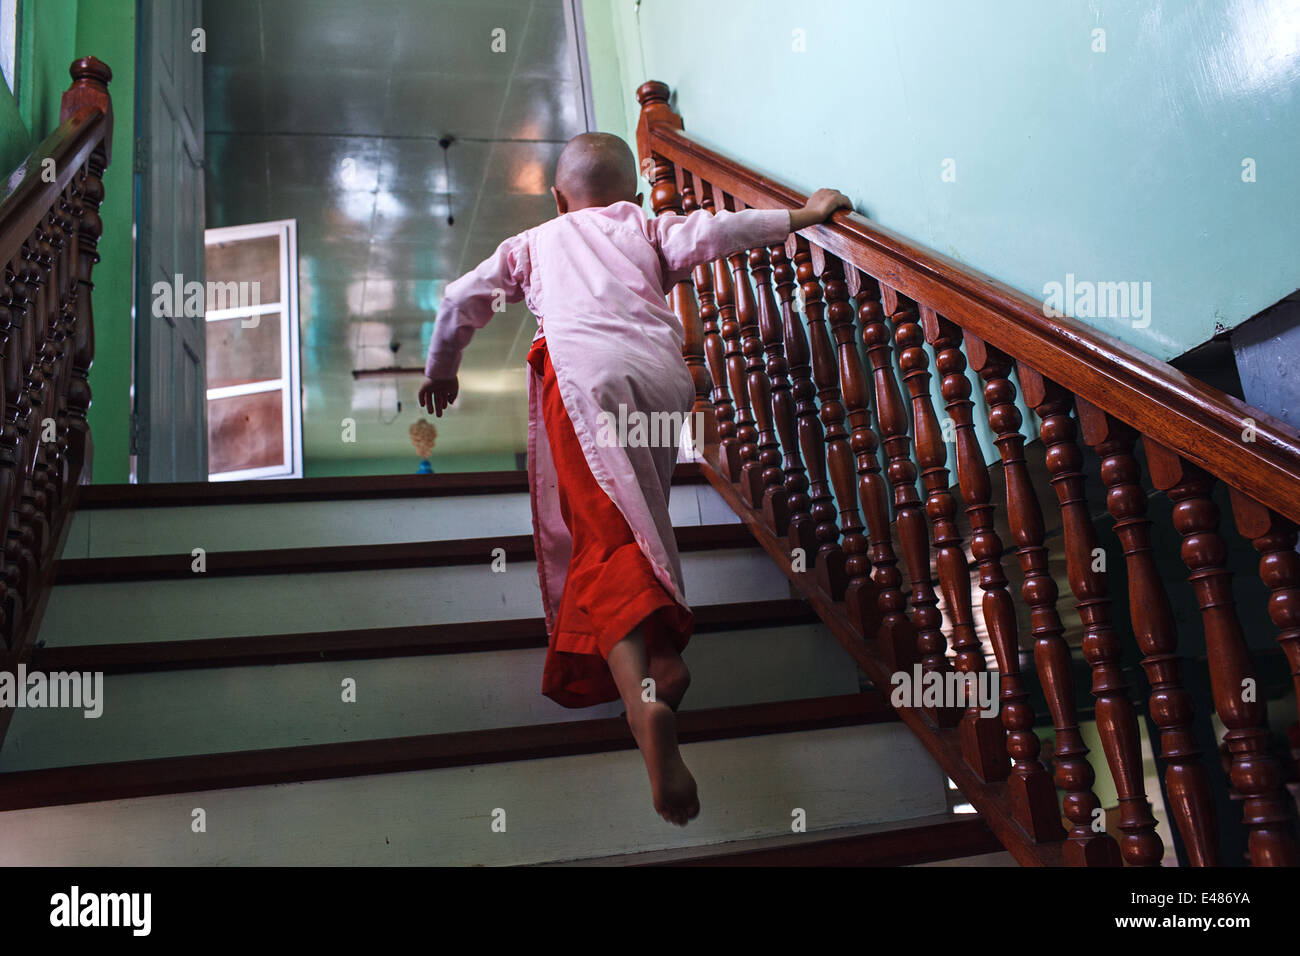 A young Buddhist novice nun runs up the stairs in a nunnery in Nyaungshwe, Myanmar (Burma) Stock Photo